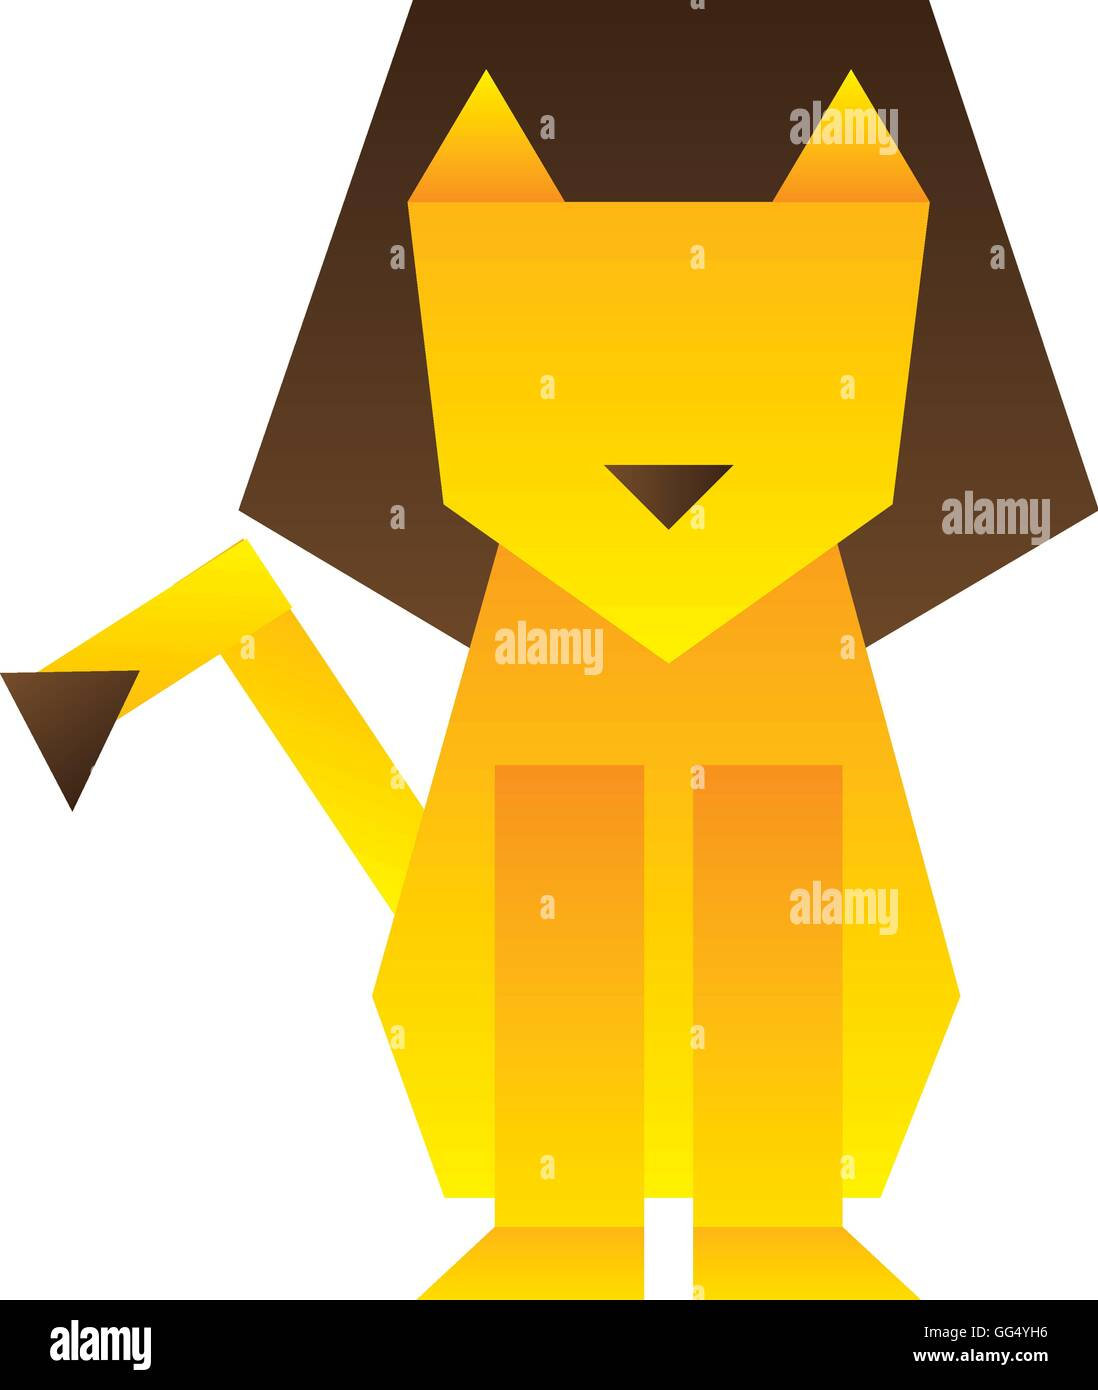 Lion Silhouette Low Poly Icon